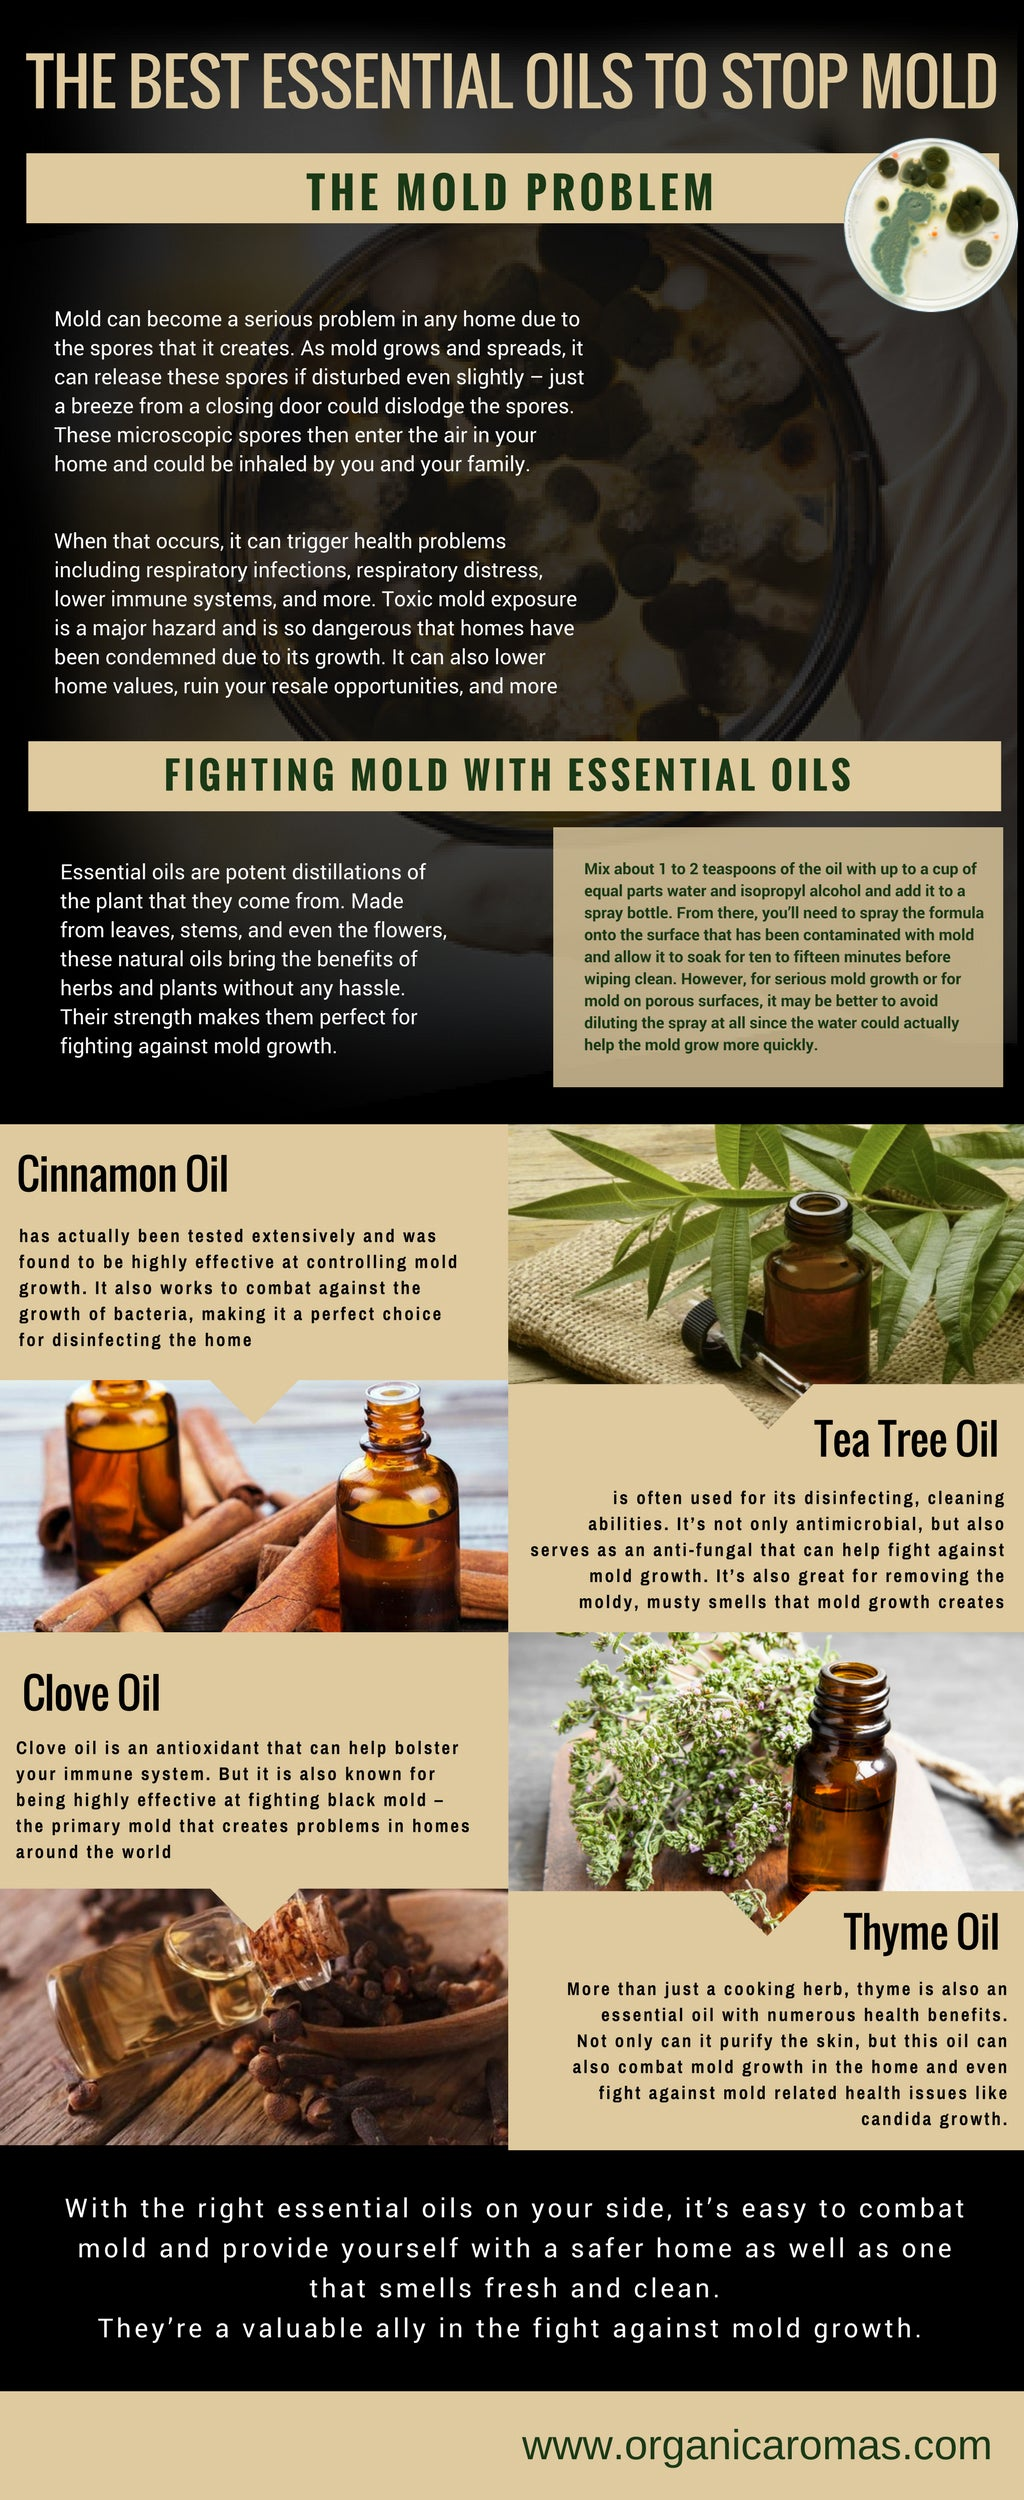 Essential Oils to Stop Mold Info-graphic